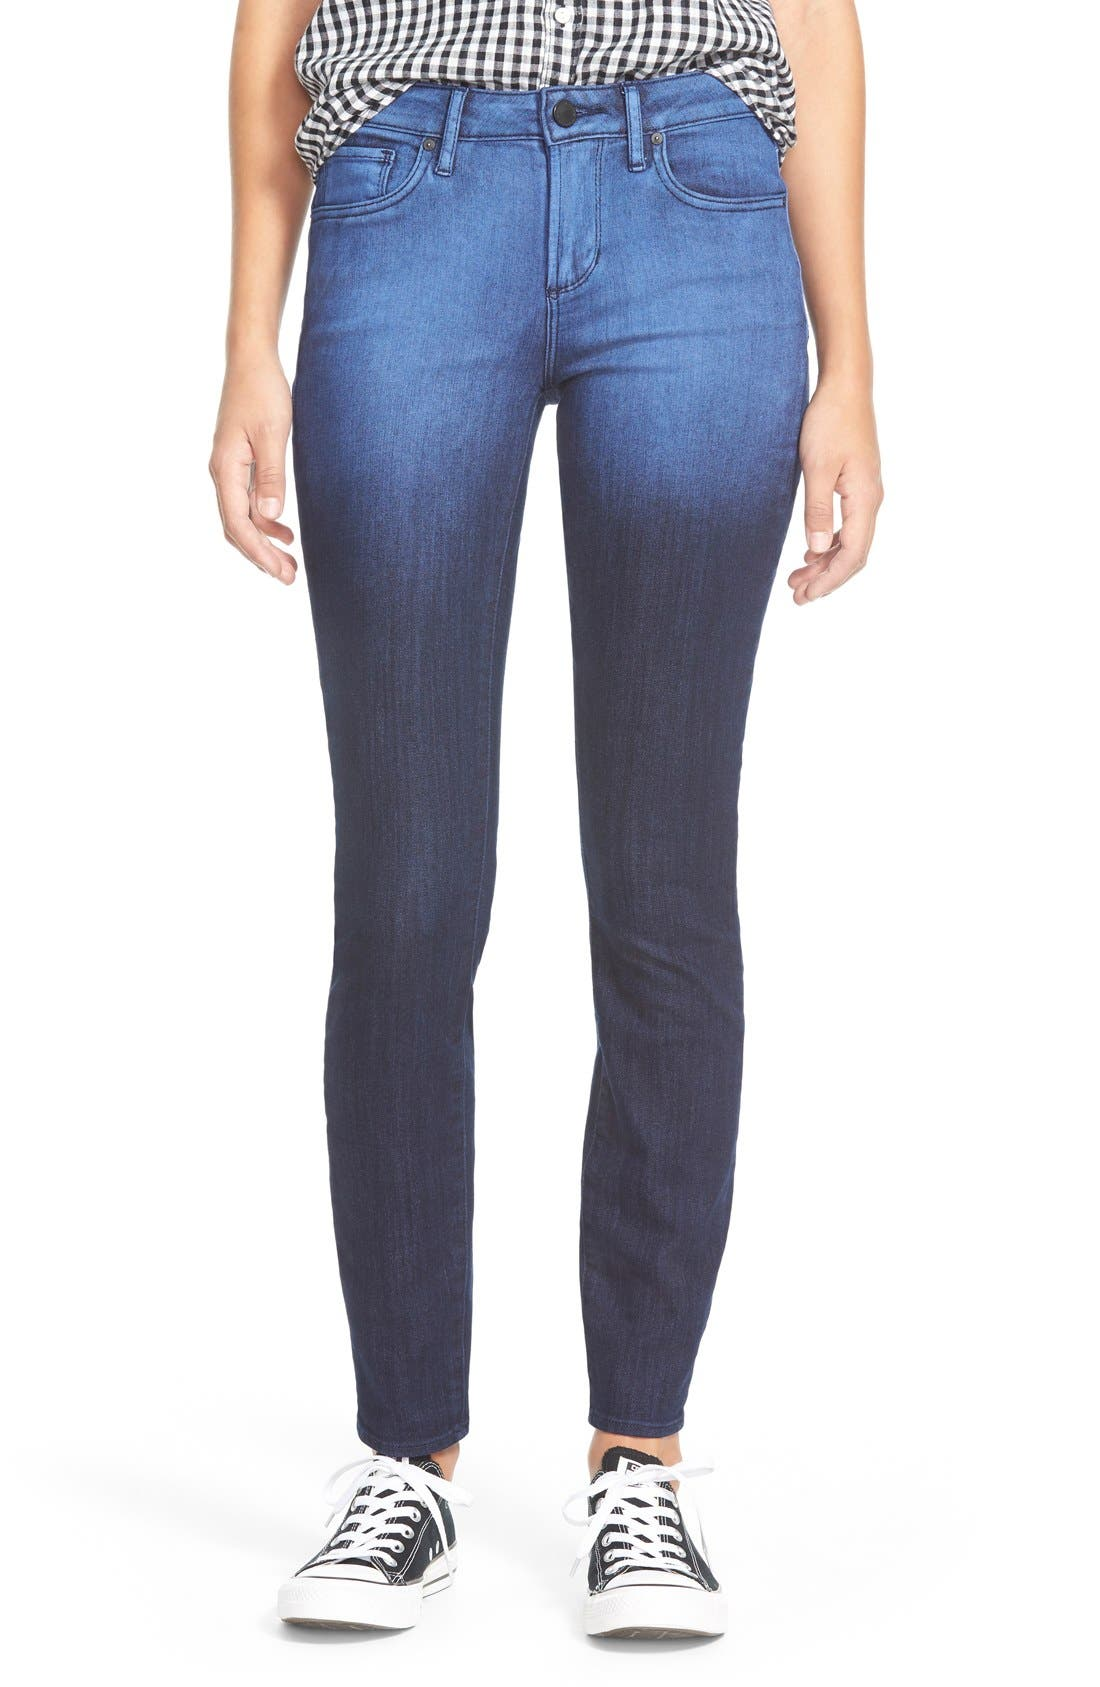 Main Image - Articles of Society Red Label 'SoHo' Skinny Jeans (Broadwick)